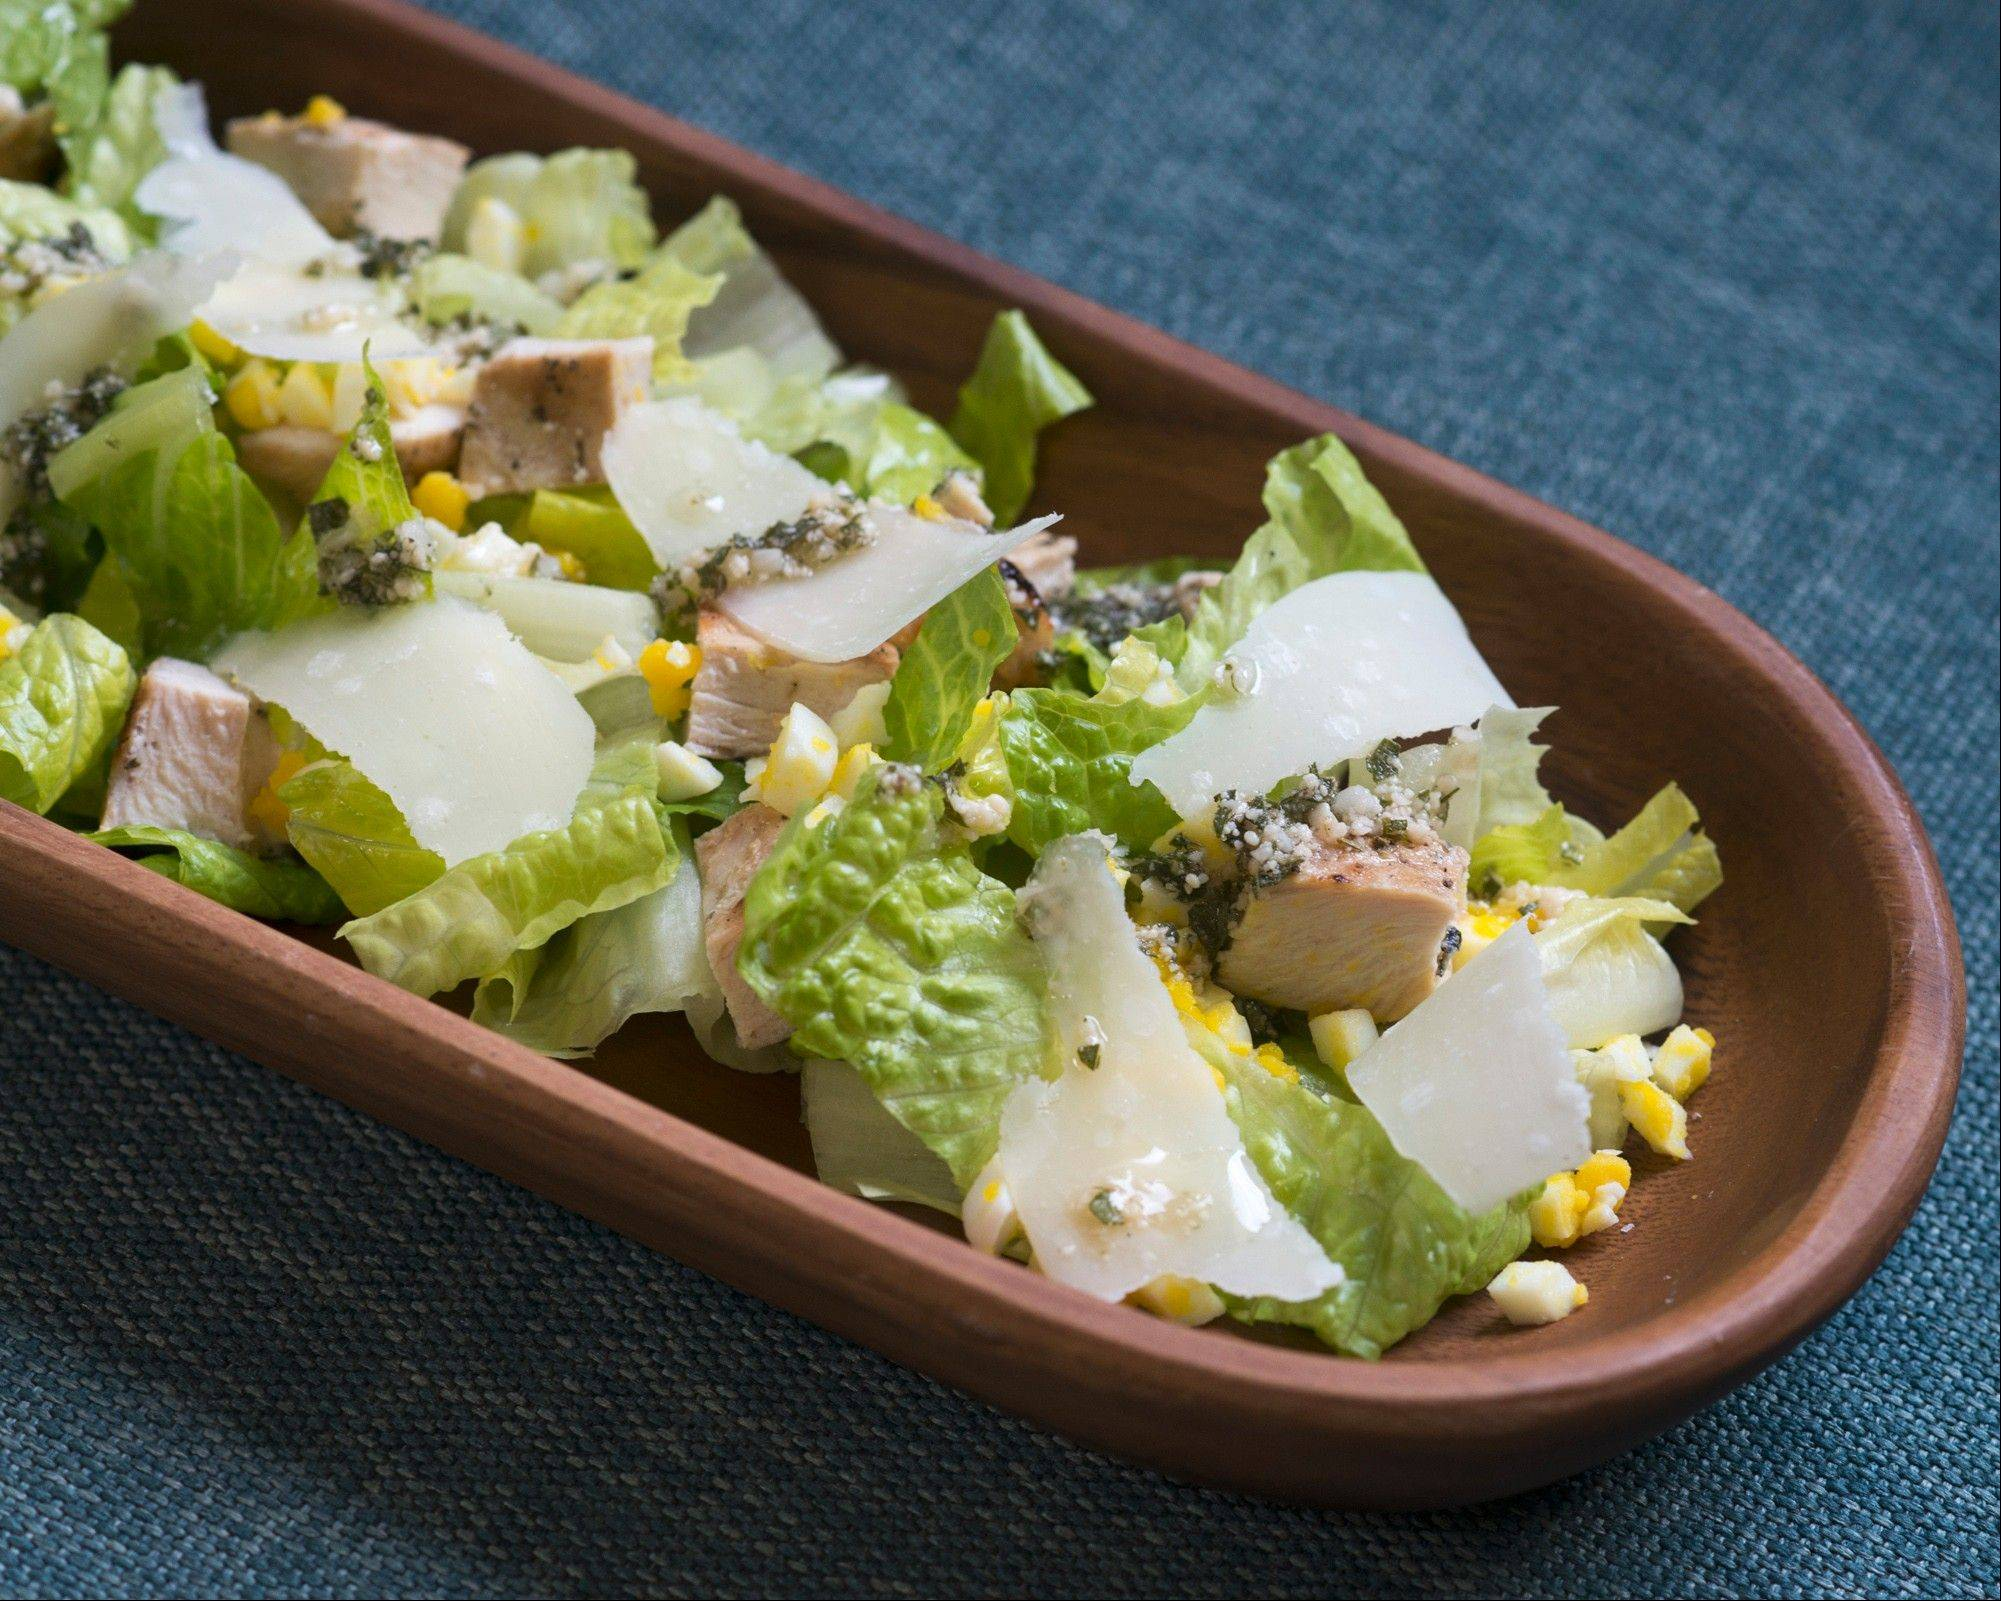 Marinated and grilled chicken makes a simple chicken Caesar salad spectacular.